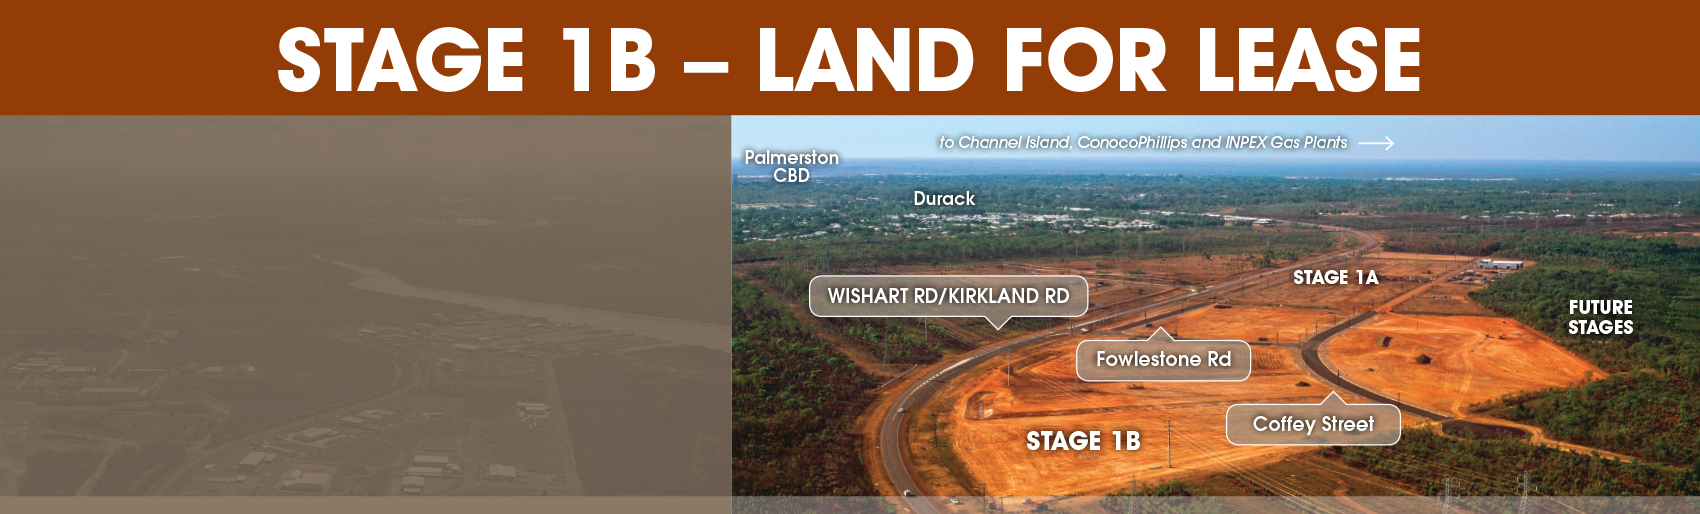 Stage 1B – Commercial Land For Lease